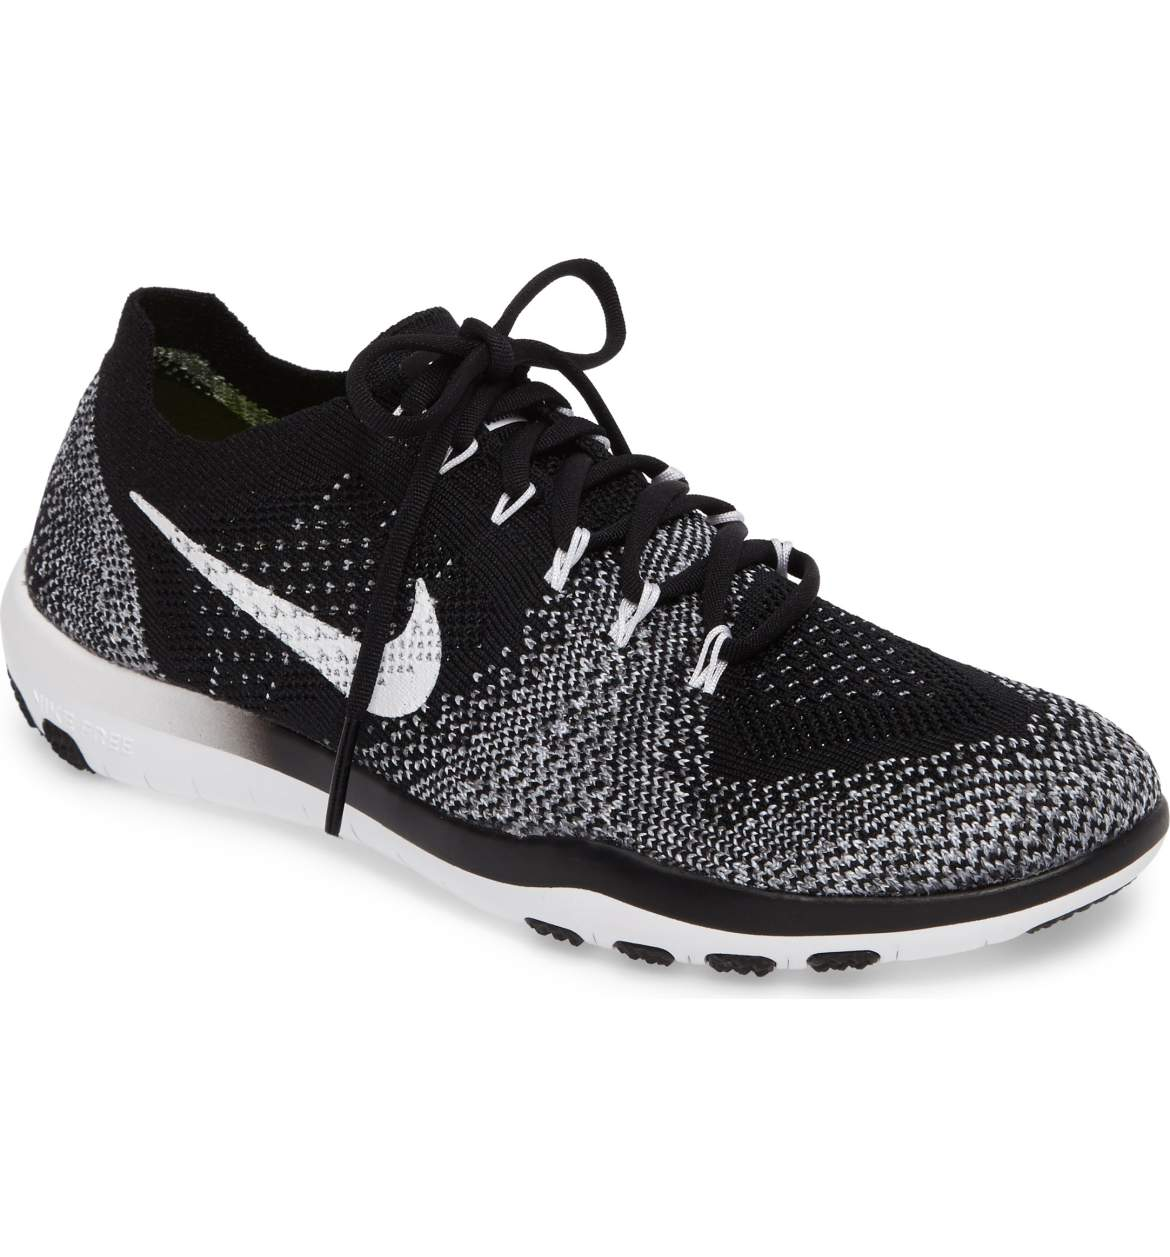 Free Focus Flyknit 2 Training Shoe